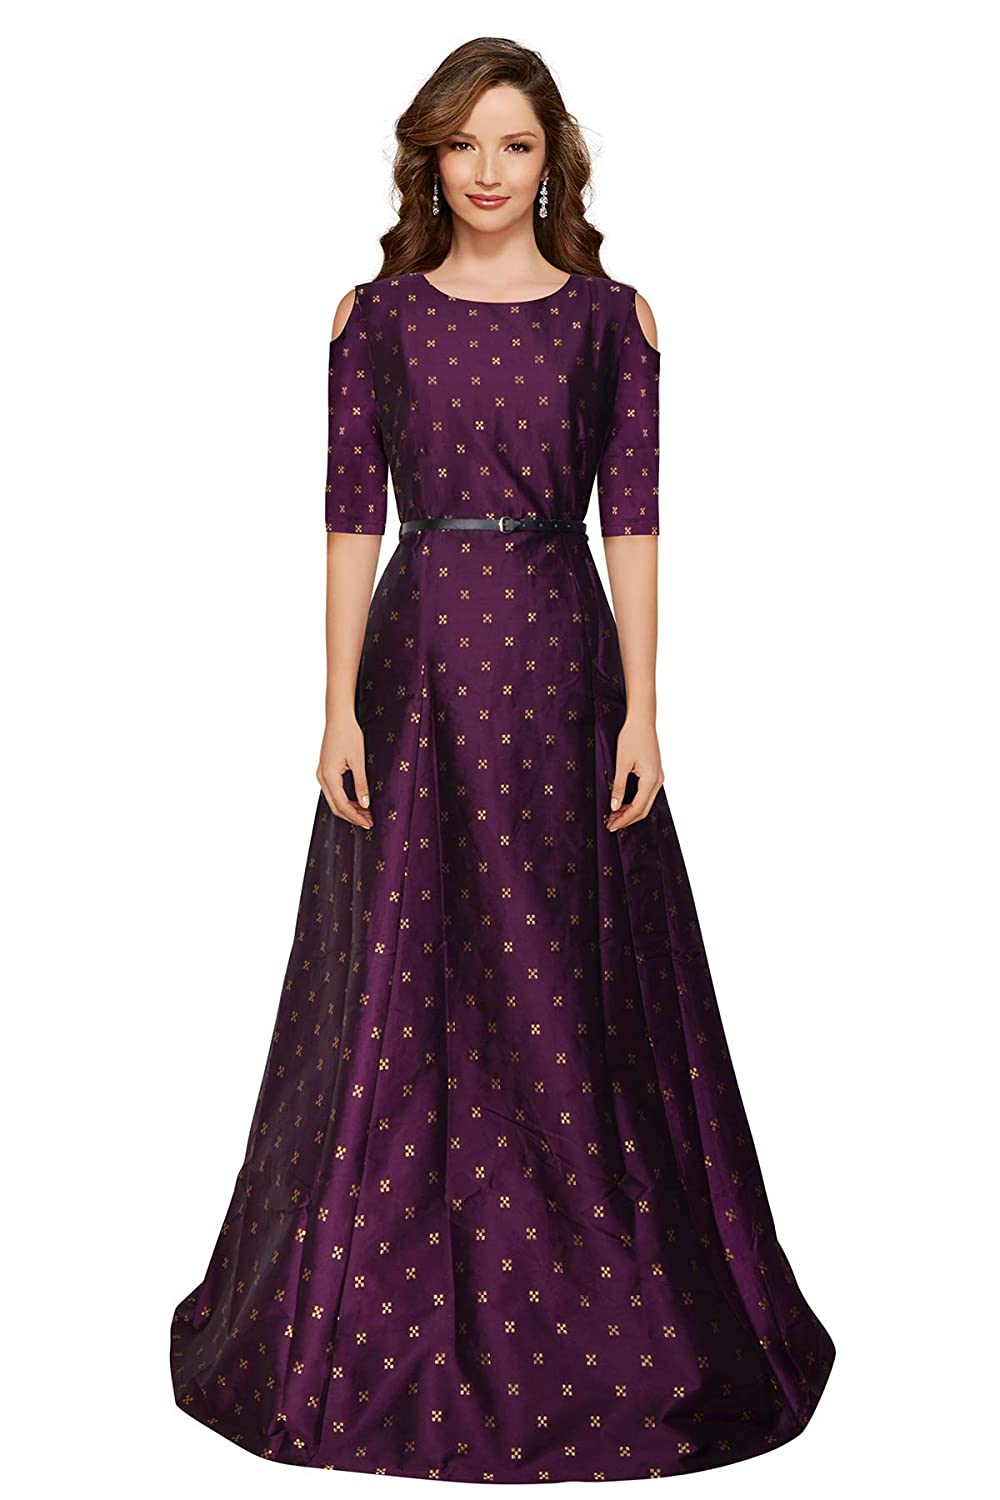 7dcc477c65 Long Gown Dress On Amazon